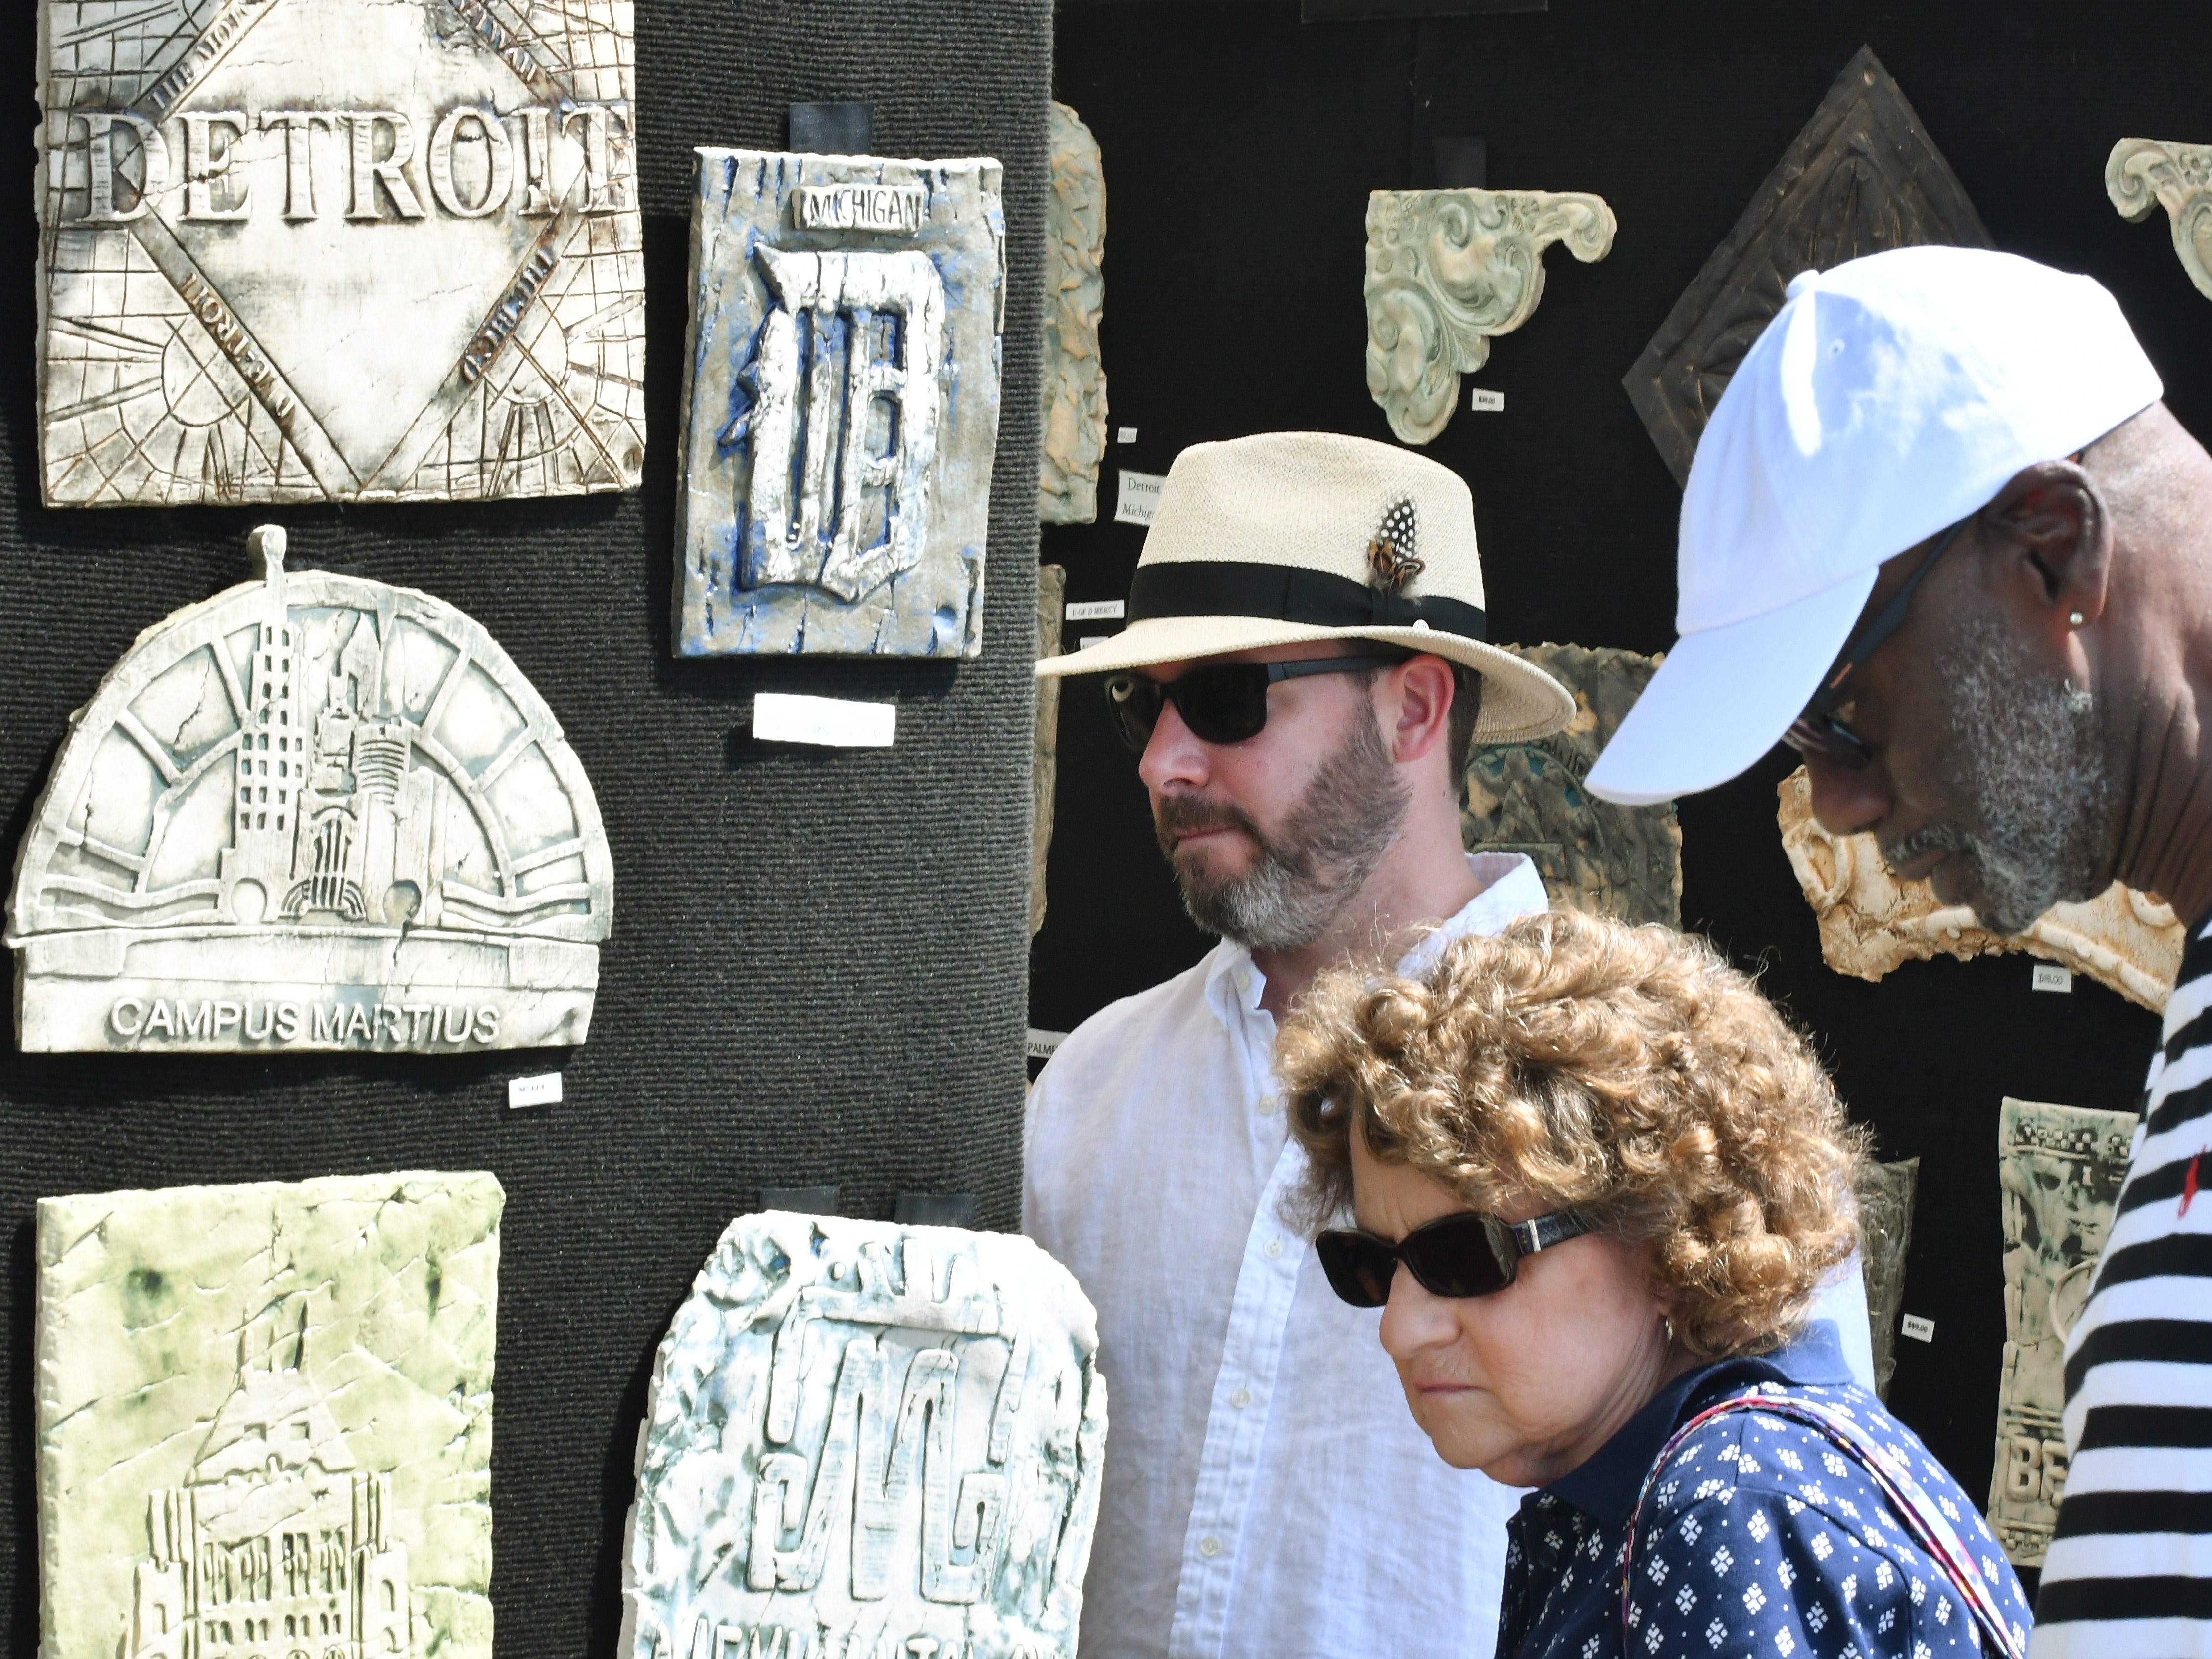 Fairgoers wander past the work of artist Debbie La Pratt whose clay pieces are created from elements found on such things as manhole covers, iron fences, and ceiling tiles and is signed with her fingerprint, leaving her mark on our history.